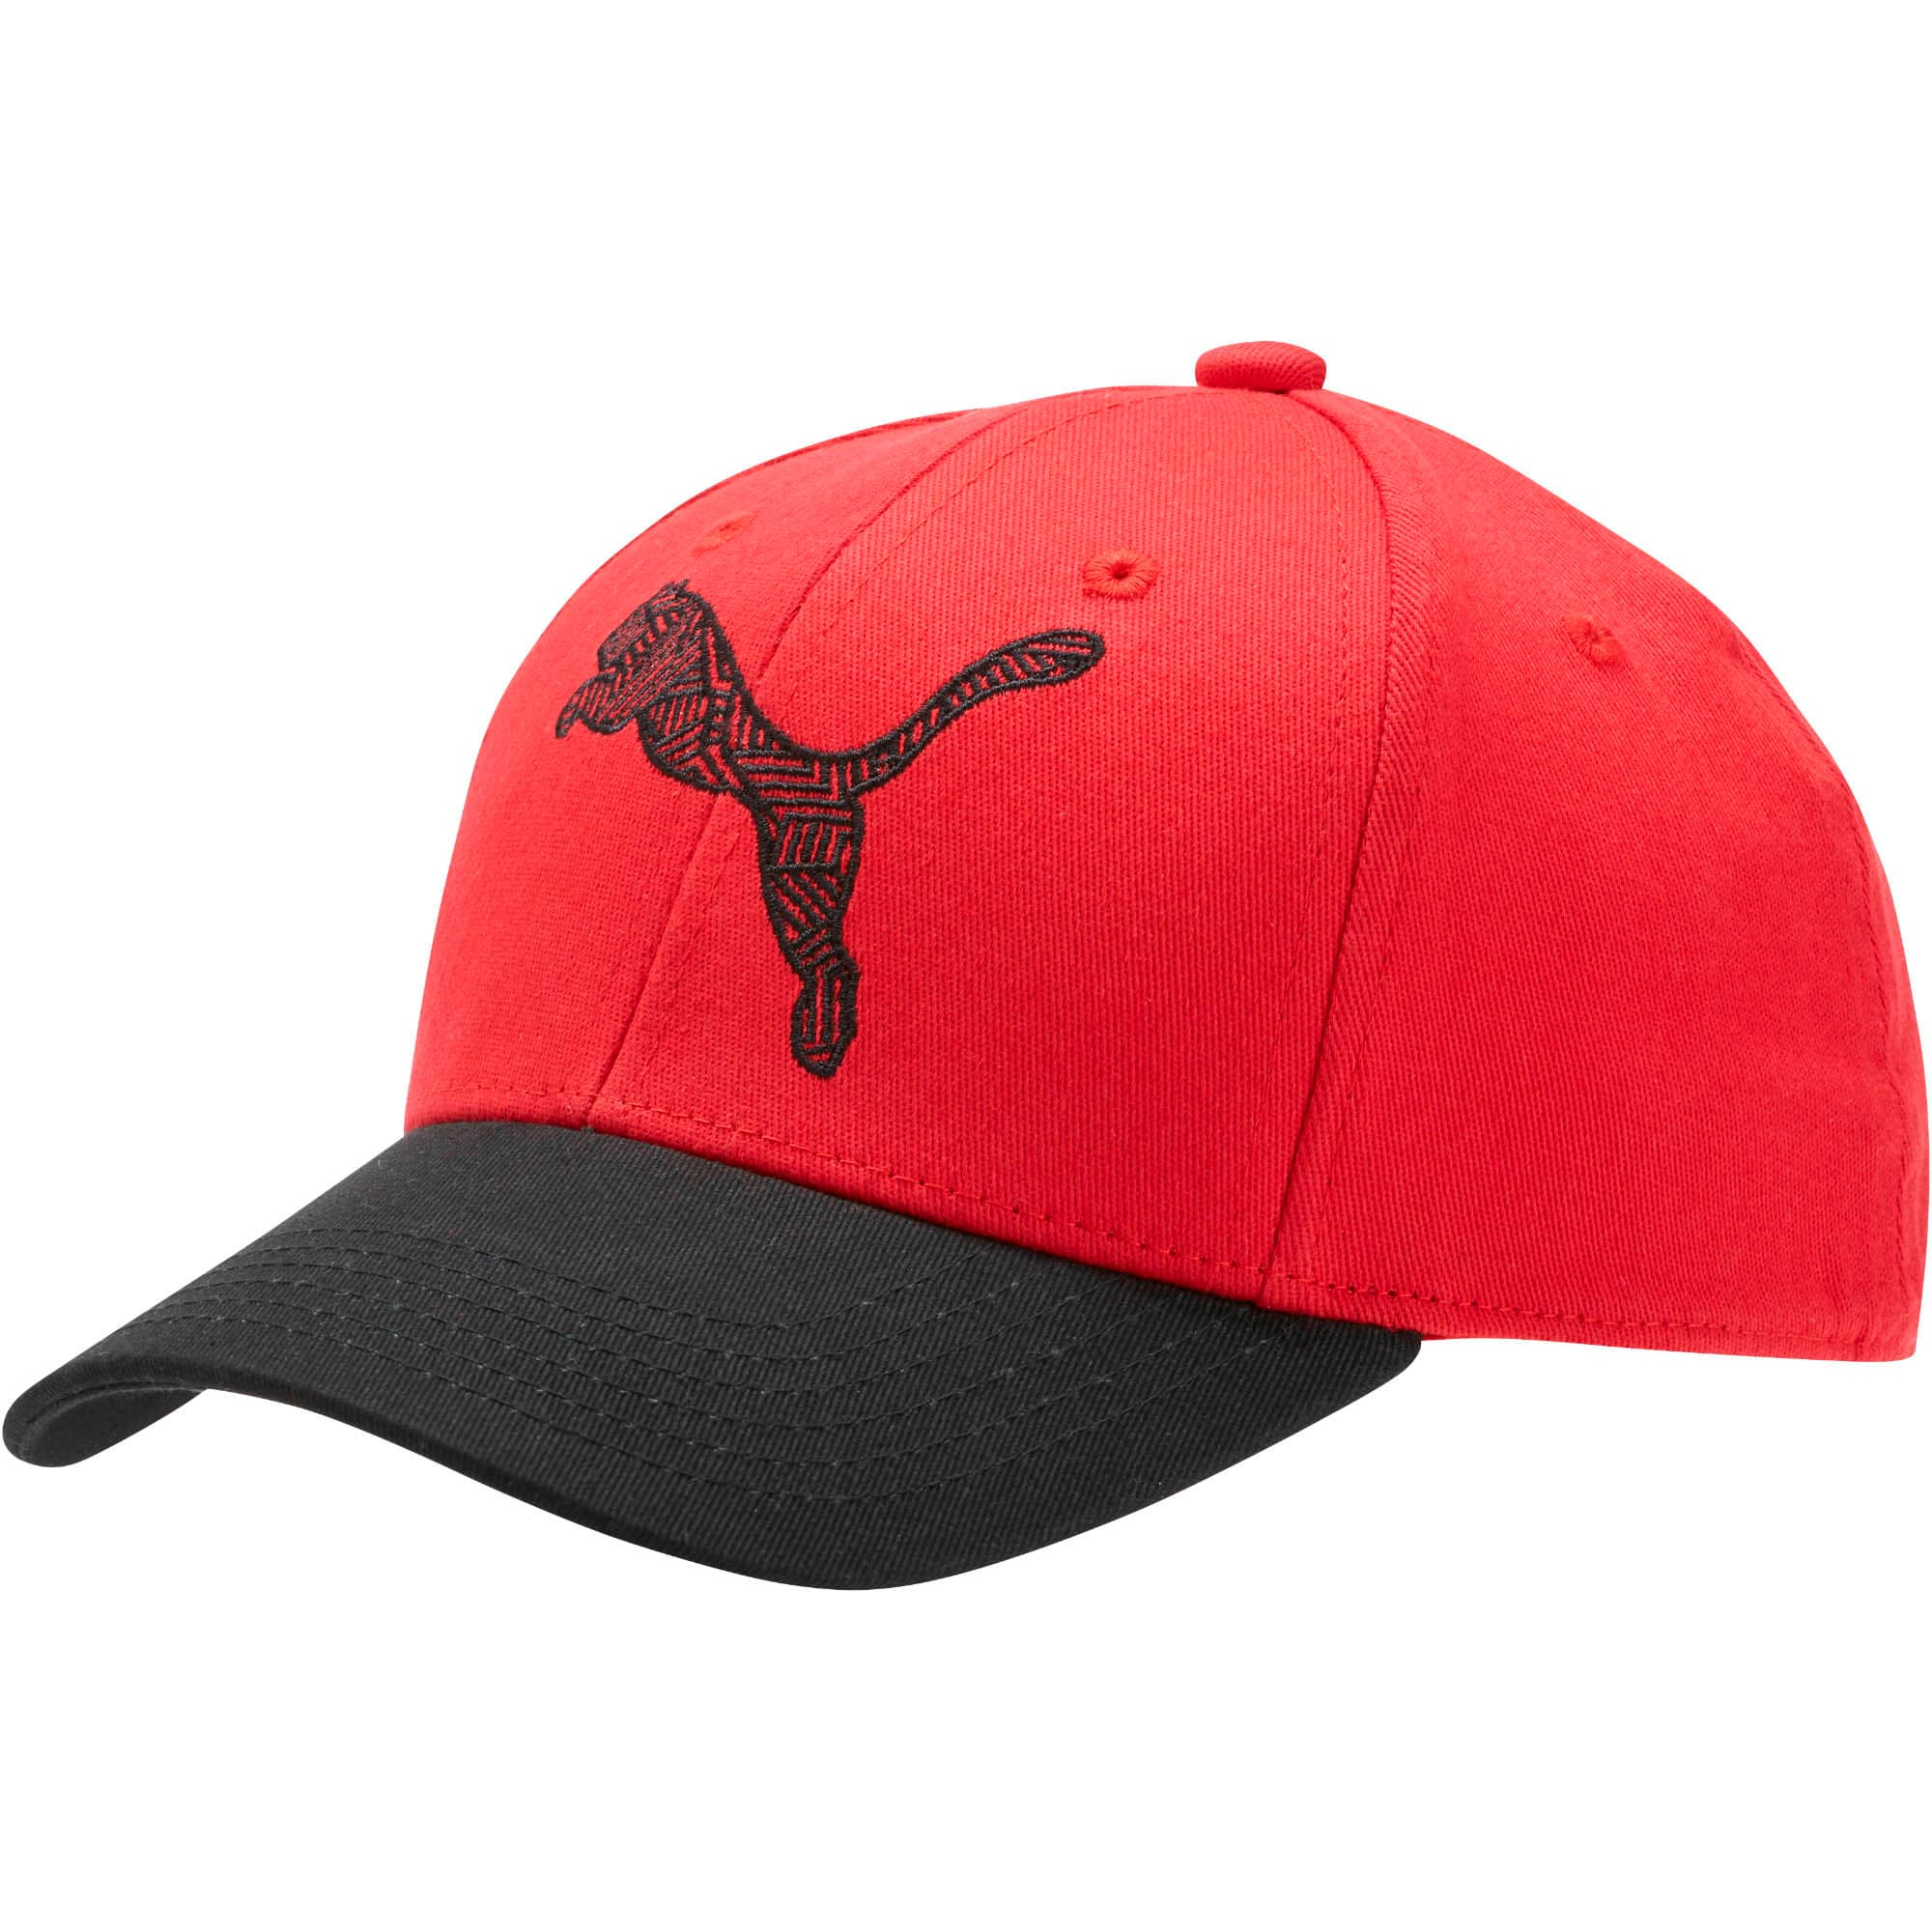 Miniatura 1 de Gorra ajustable The Podium, NEGRO/ROJO, mediano